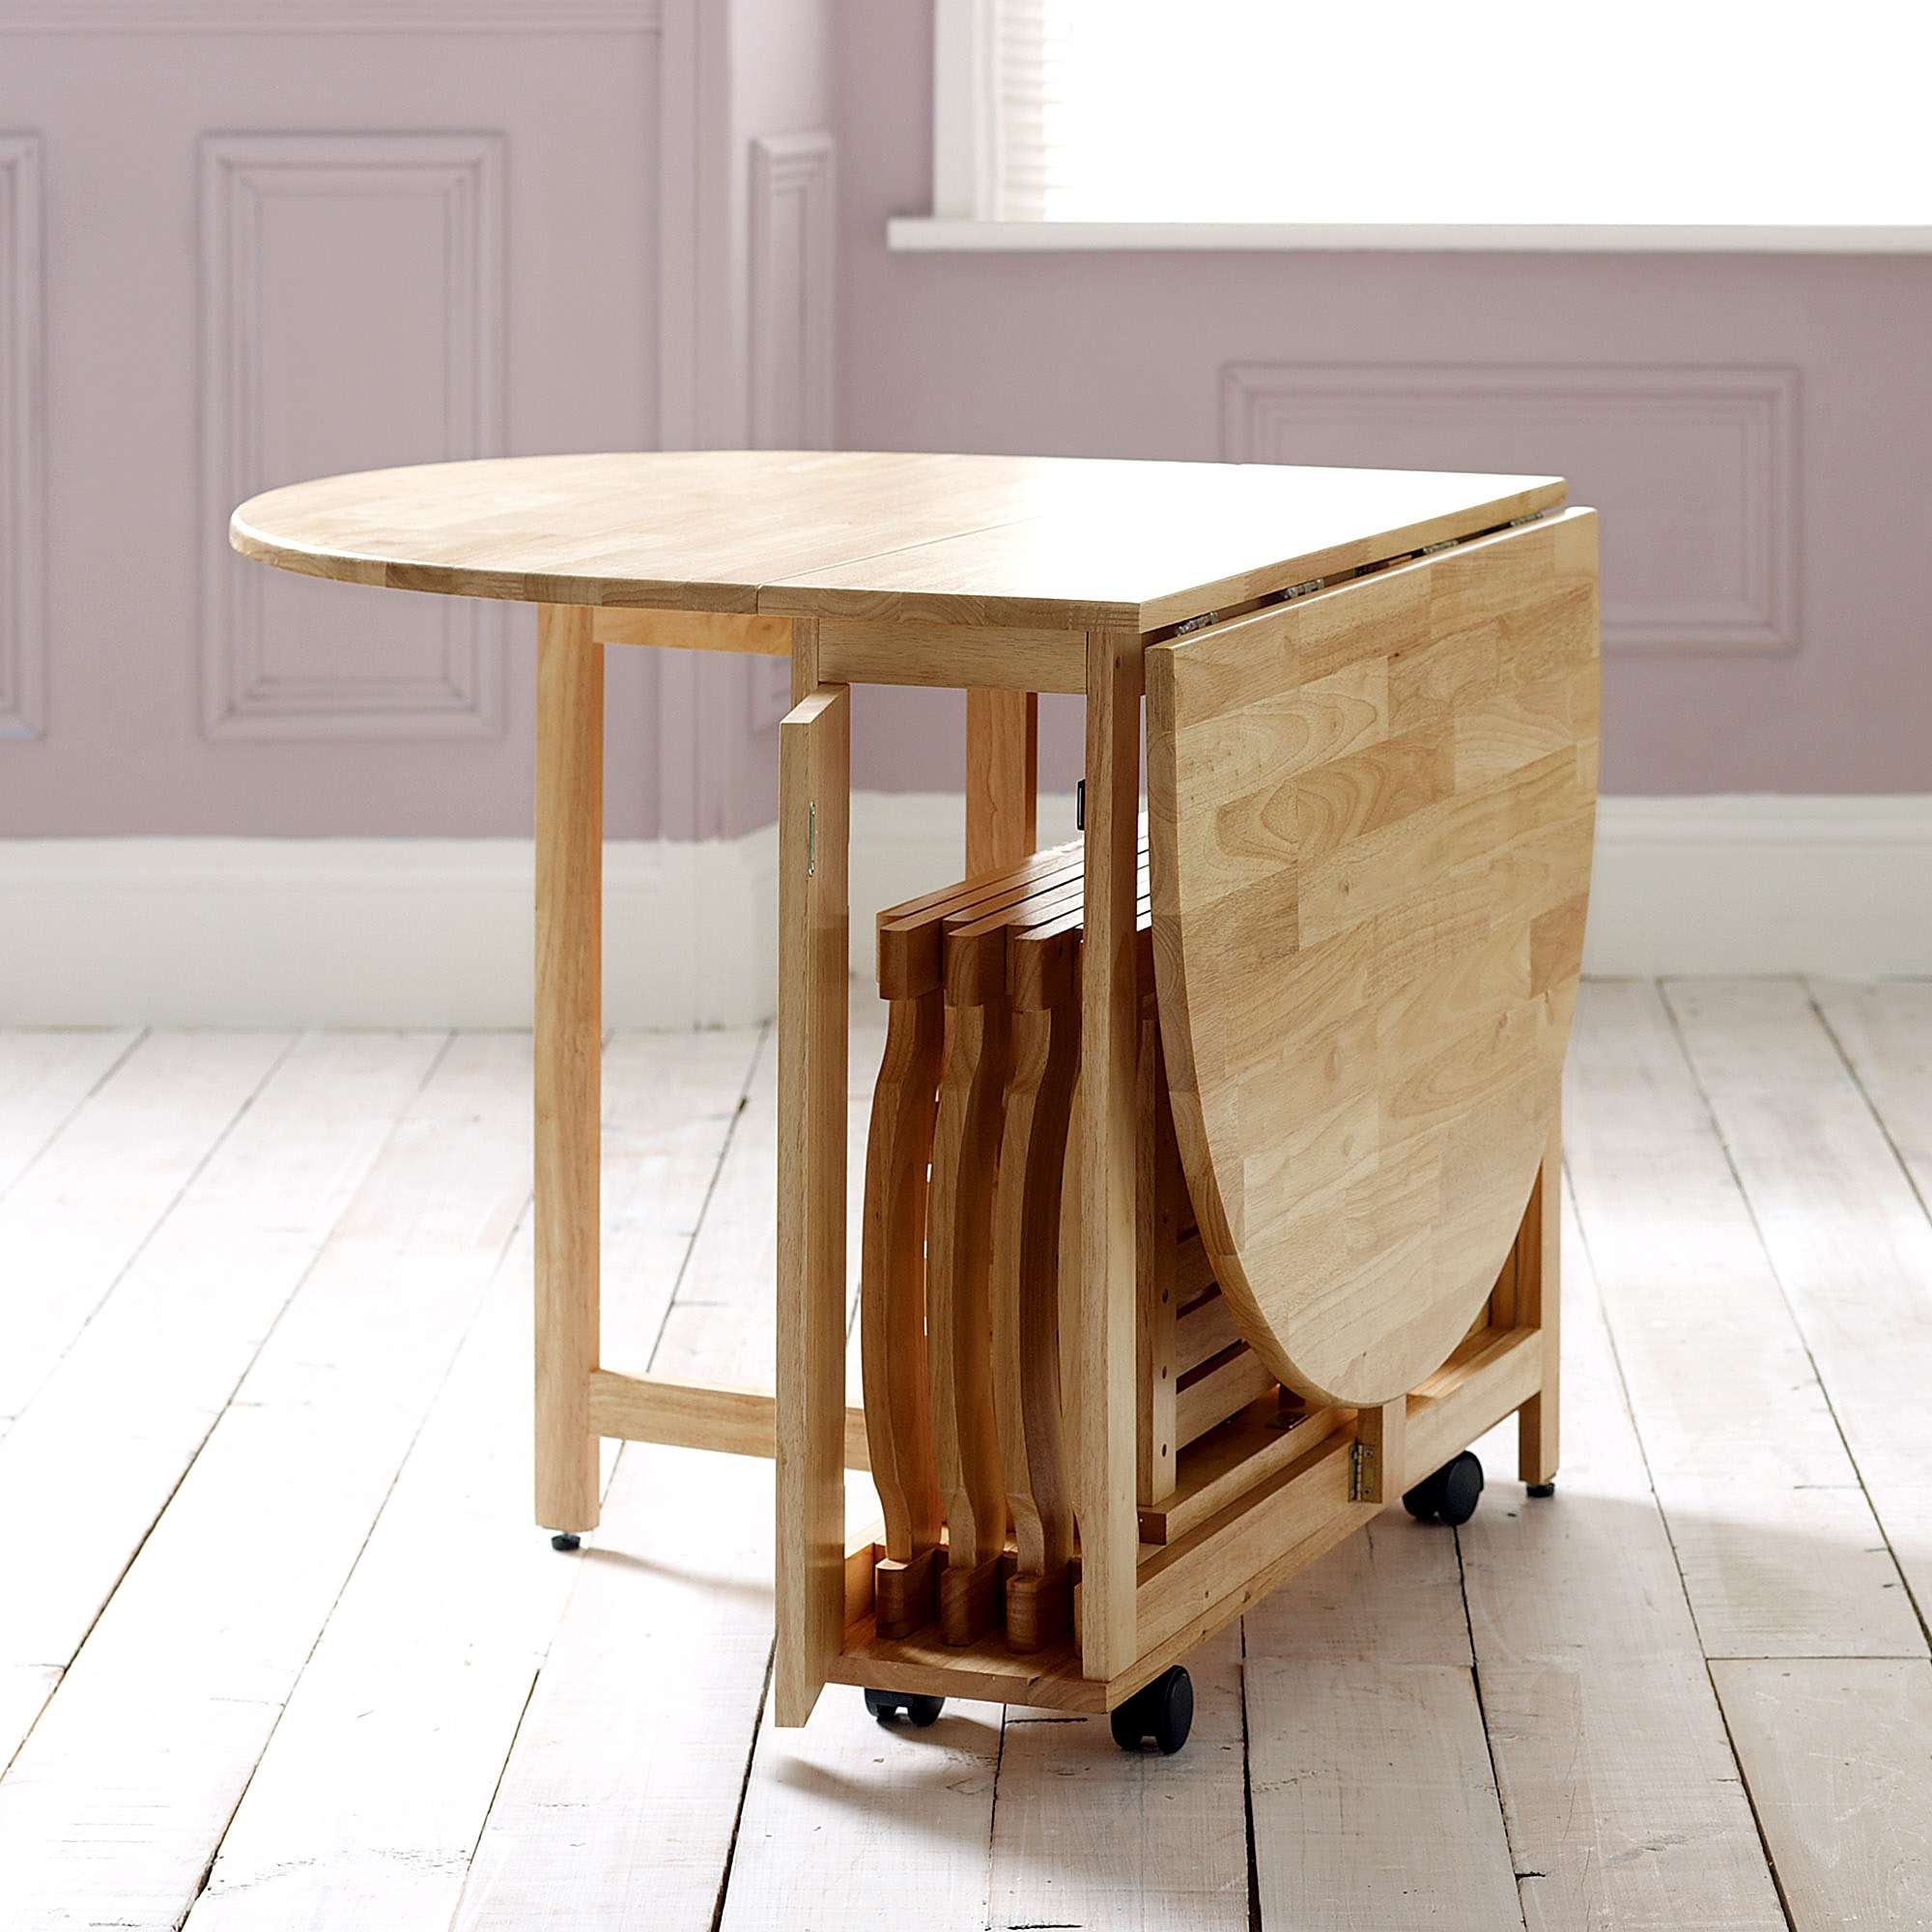 Small Dining Tables For 2 For Fashionable Choose A Folding Dining Table For A Small Space – Adorable Home (View 15 of 25)